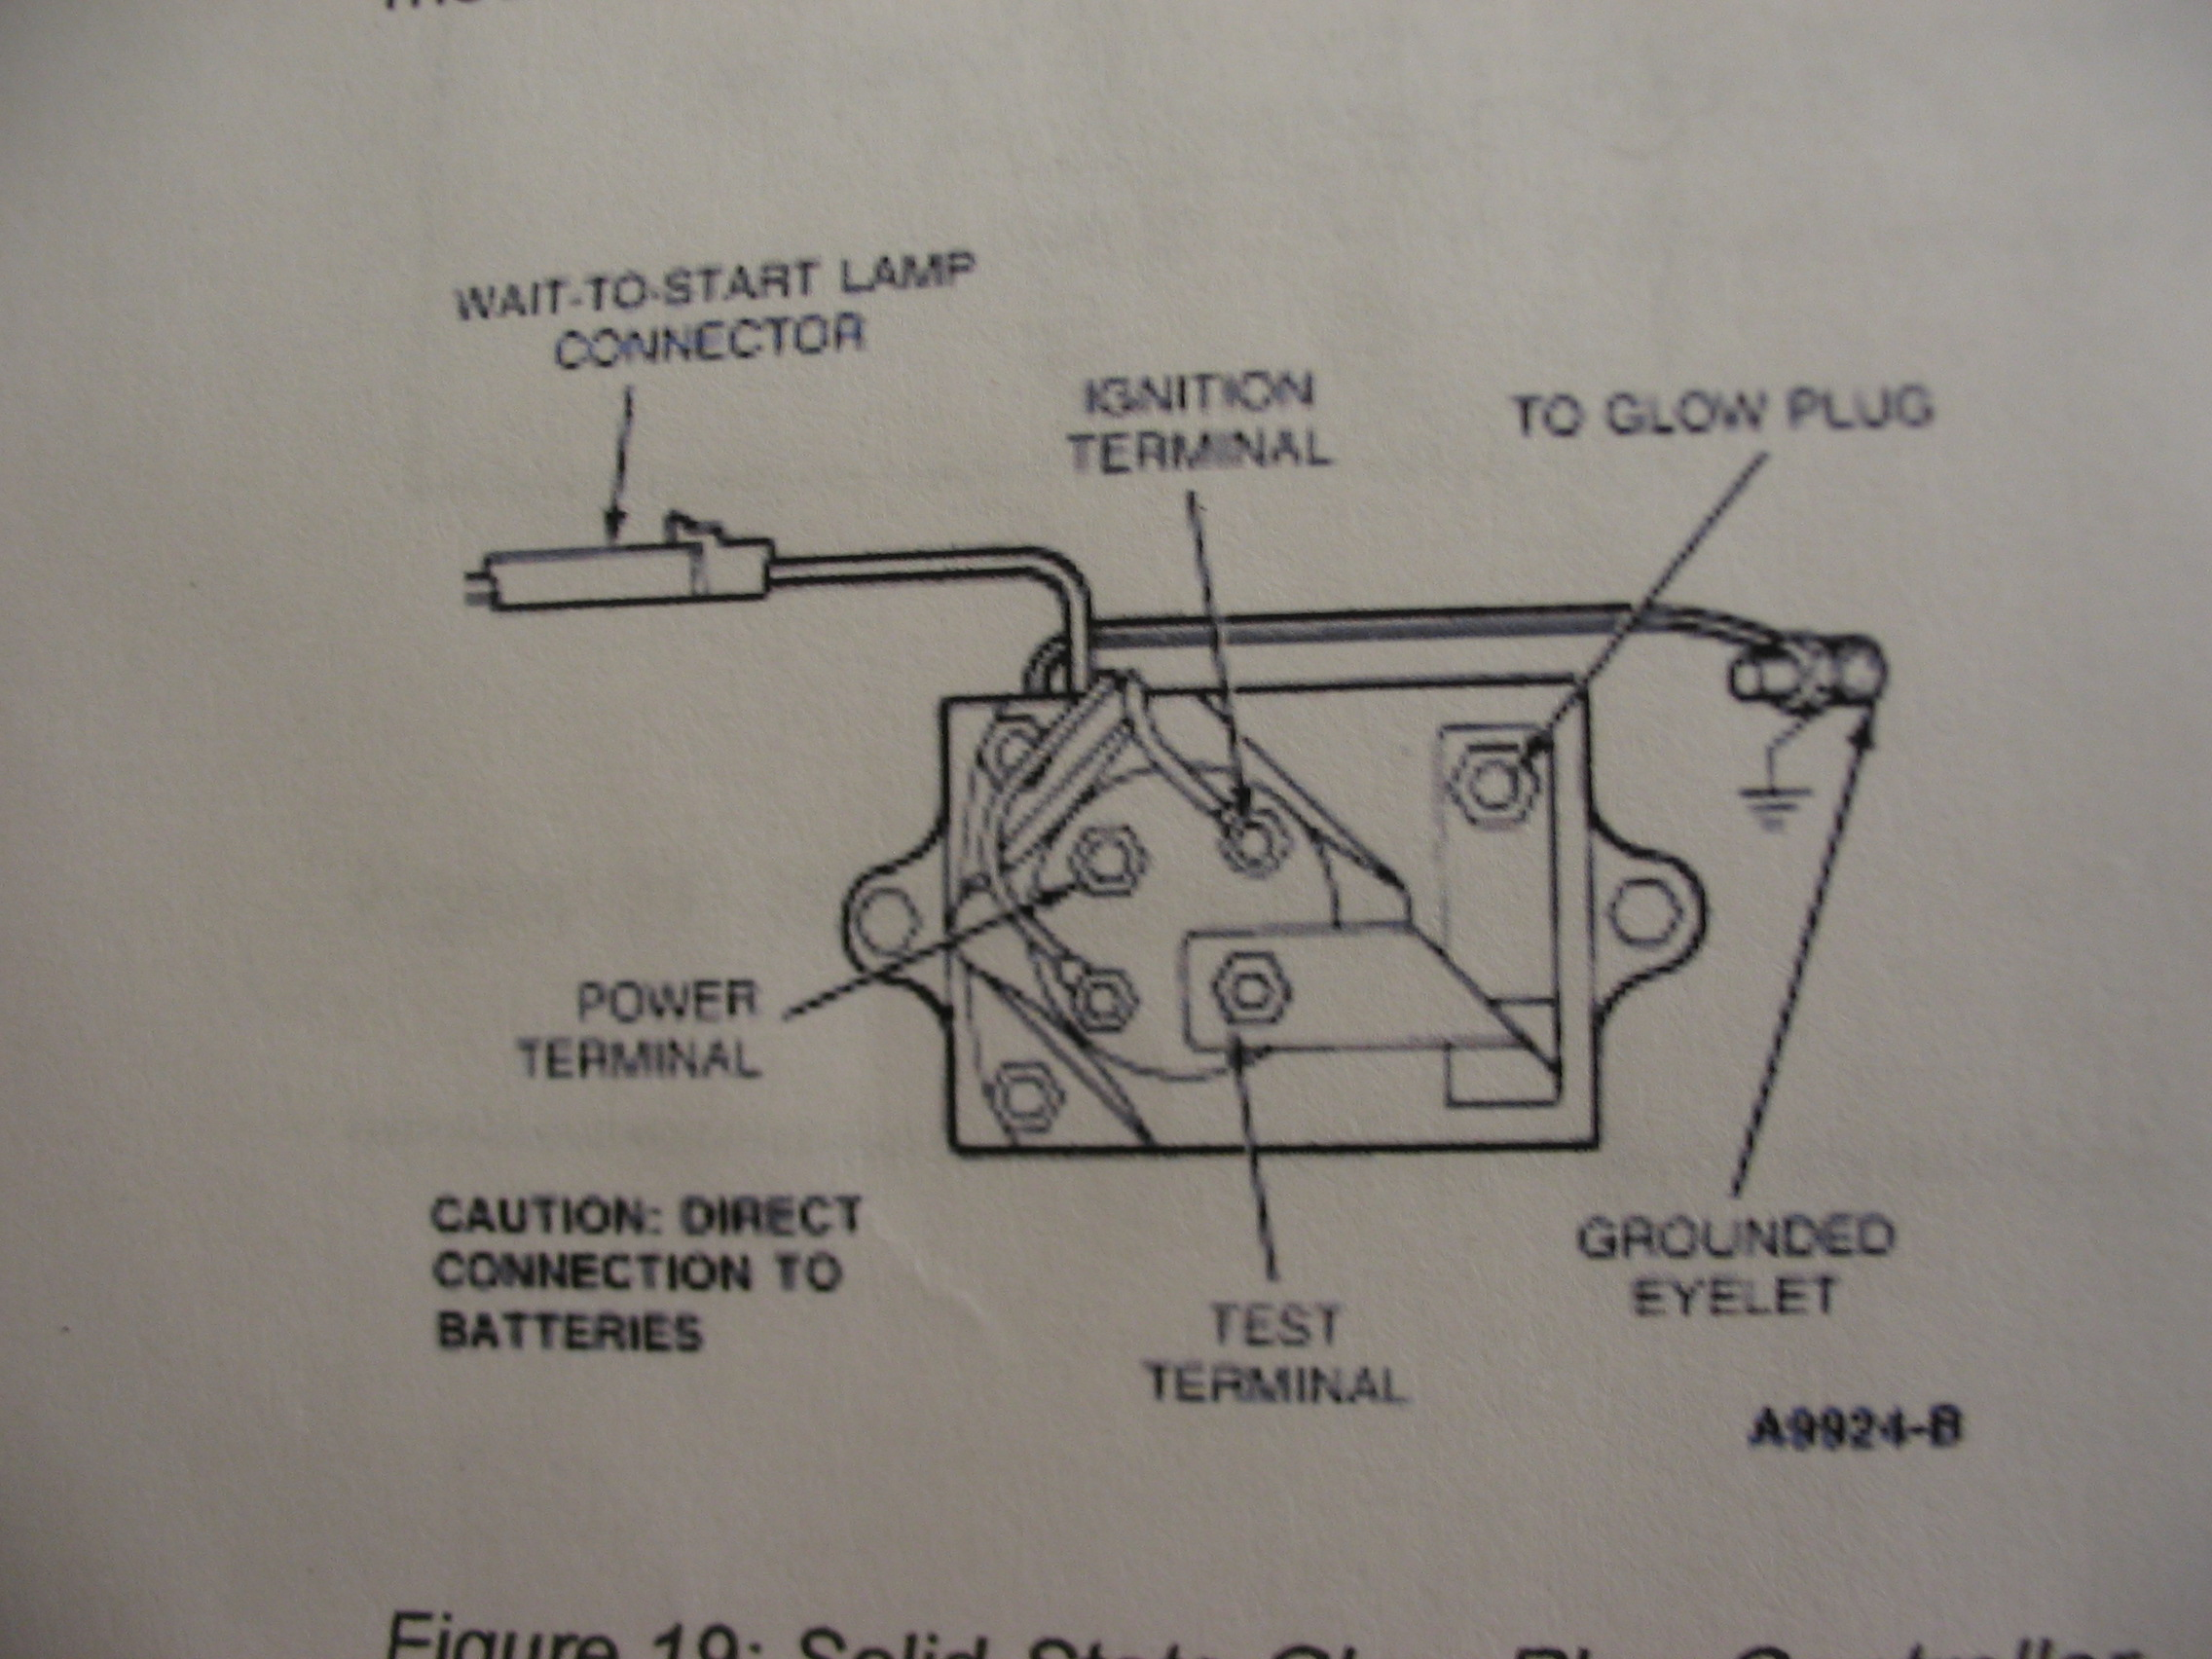 IMG_1759 ford diagrams ford 7.3 glow plug relay wiring diagram at crackthecode.co